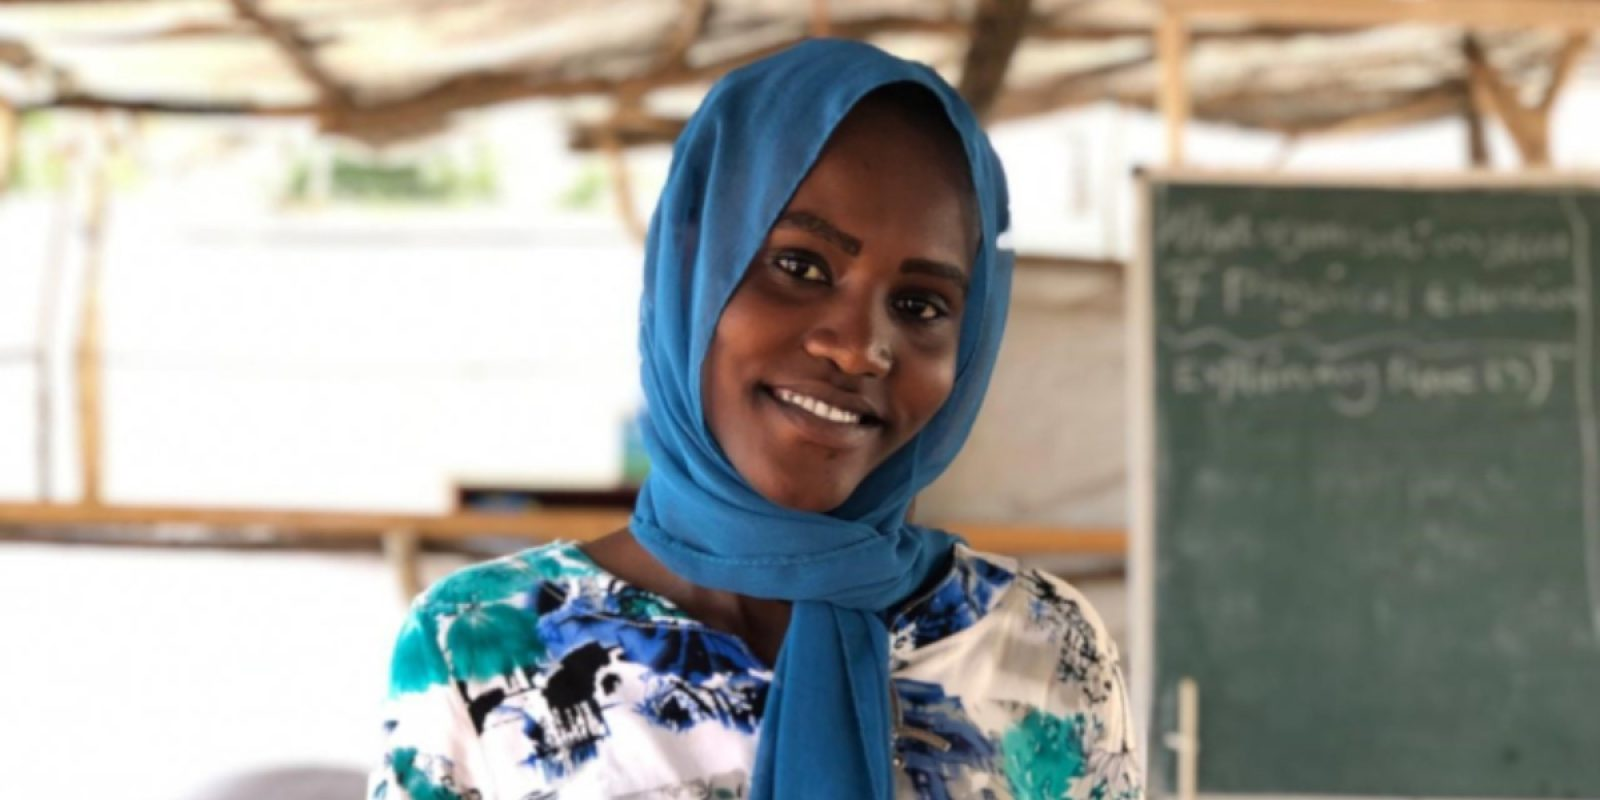 Basamat Osman Atom, from the Blue Nile region of Sudan, is training to be a teacher with the support of JRS in Maban, South Sudan (Jesuit Refugee Service)